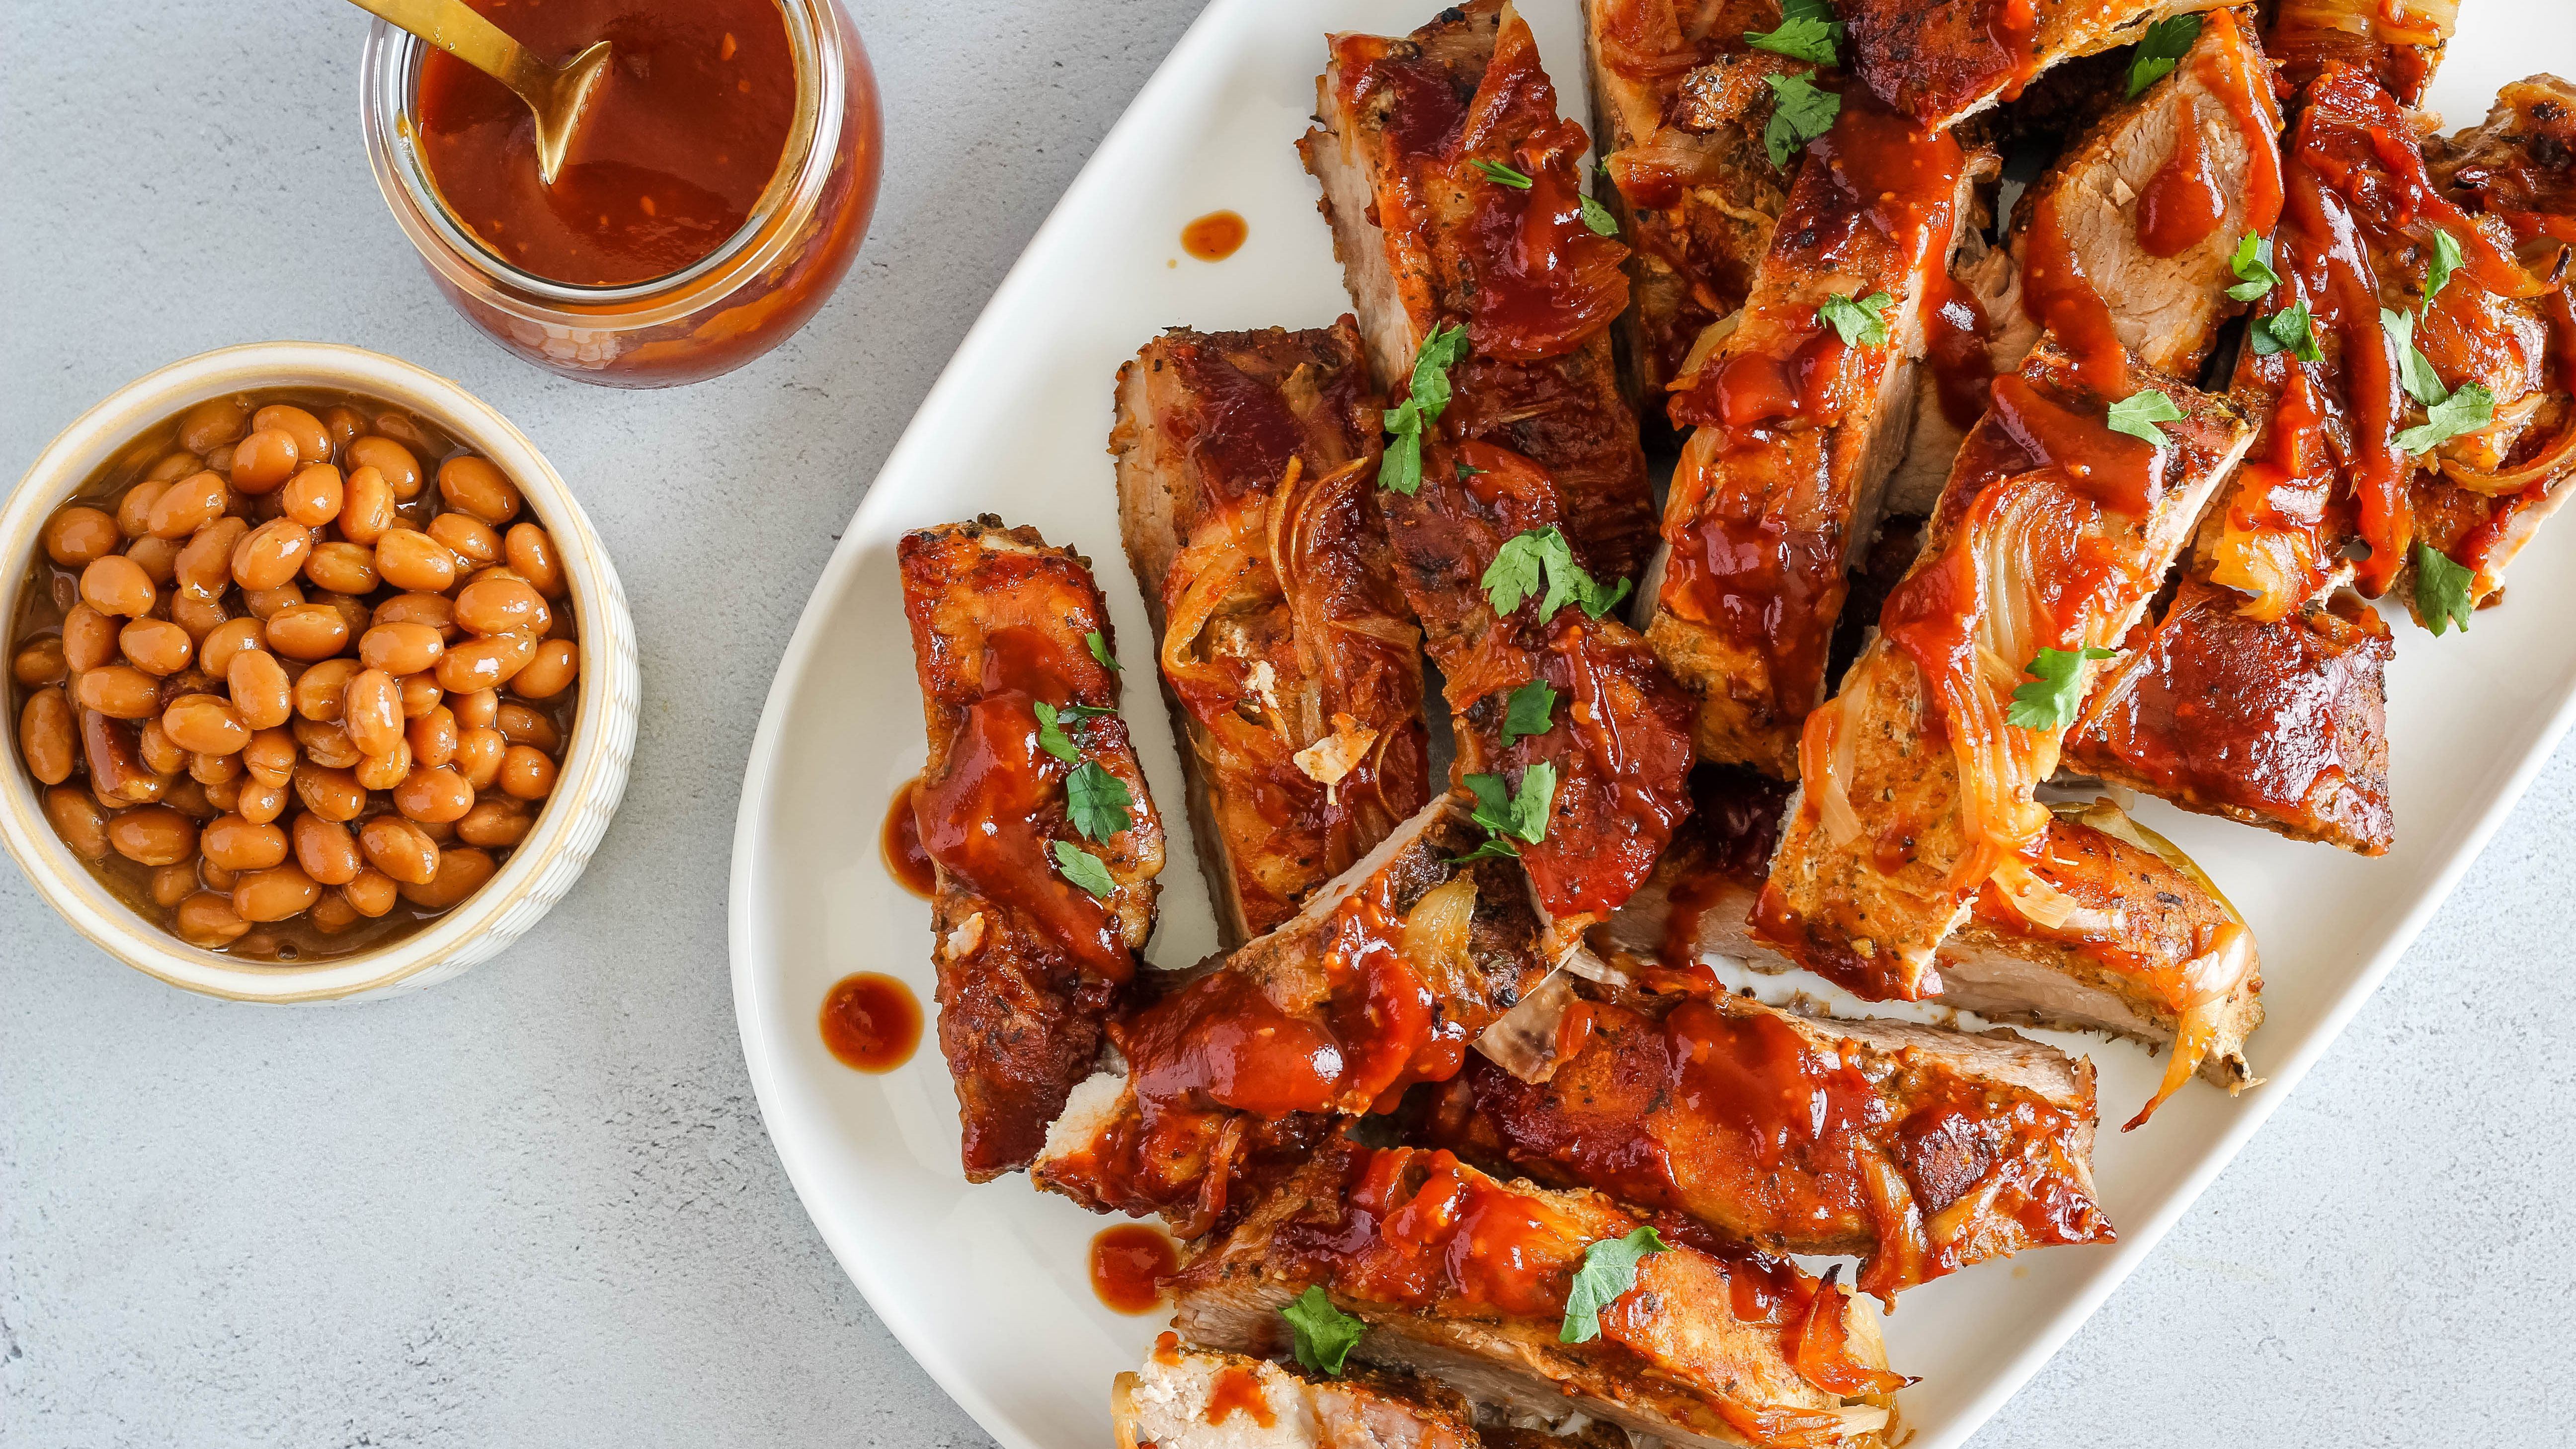 Baked Barbecued Country Style Pork Ribs Recipe,Easy Swedish Meatball Recipe